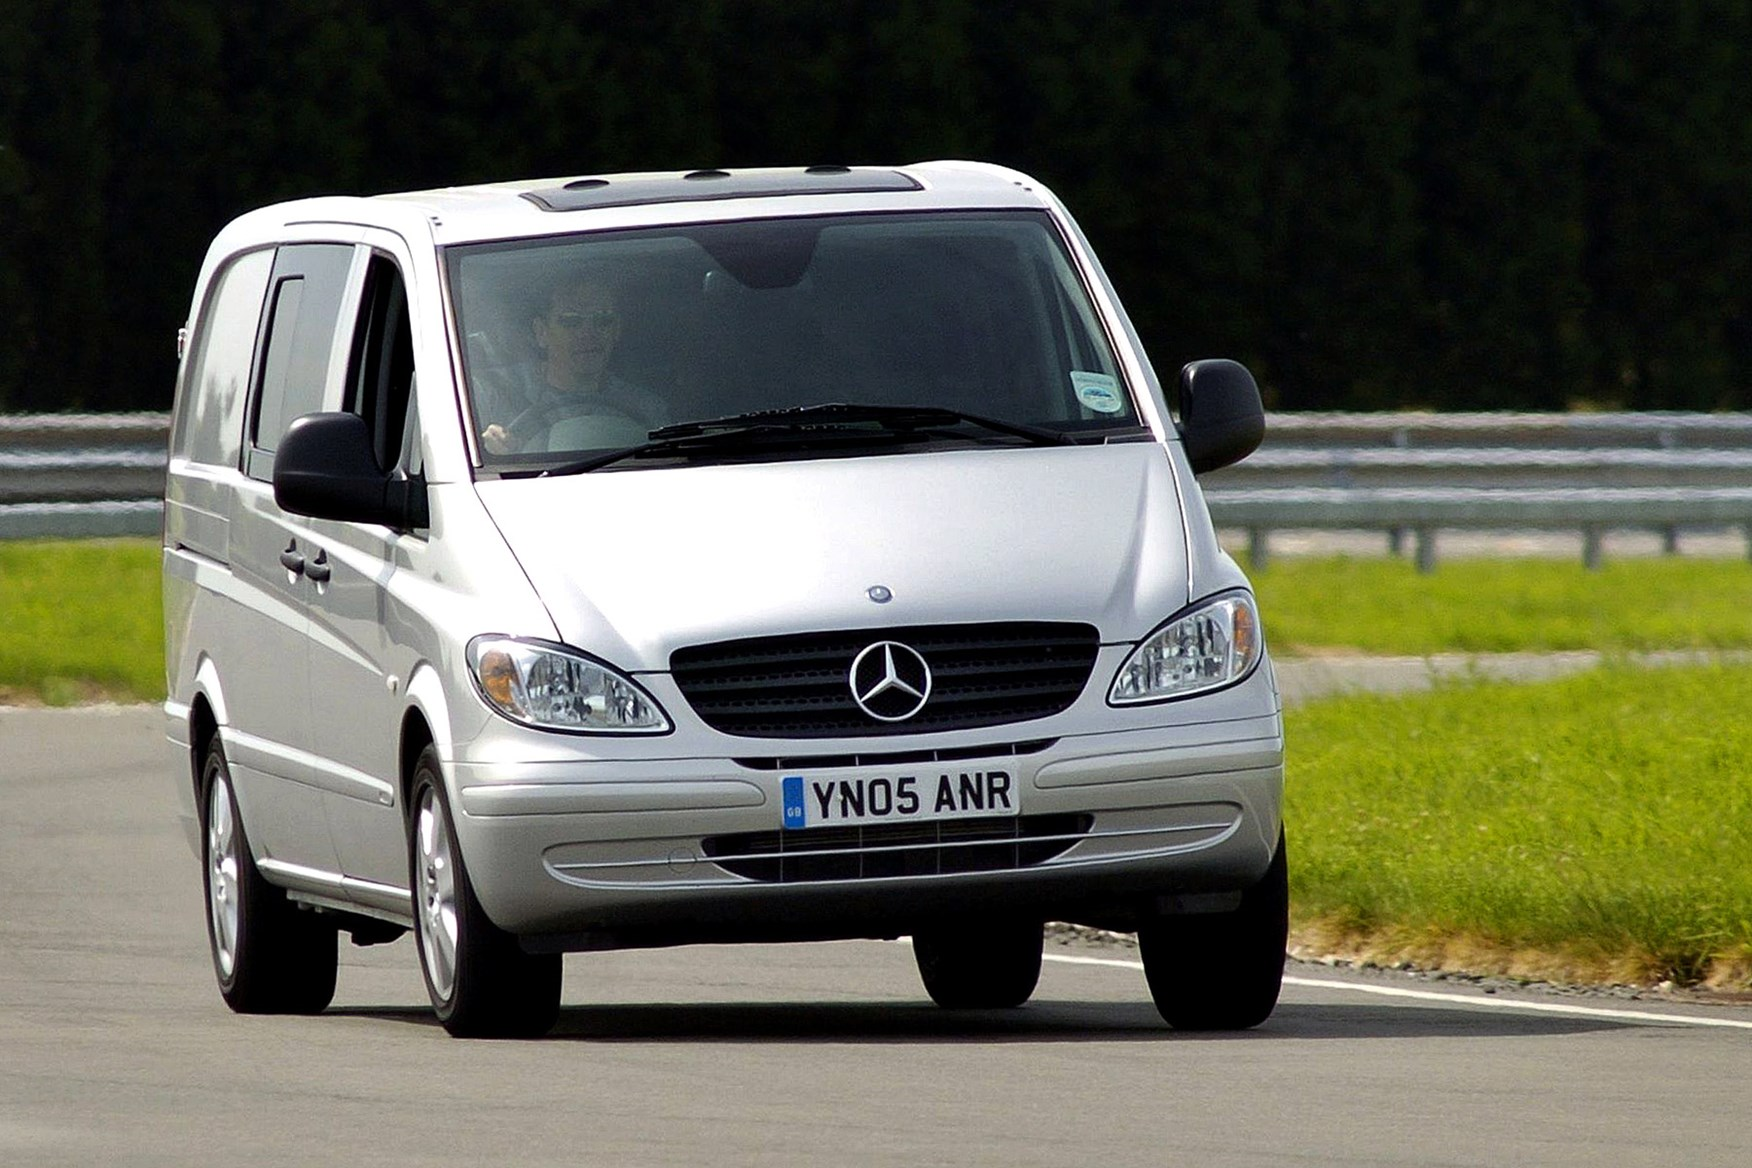 Mercedes-Benz Vito 2003-2014 review on Parkers Vans - front exterior